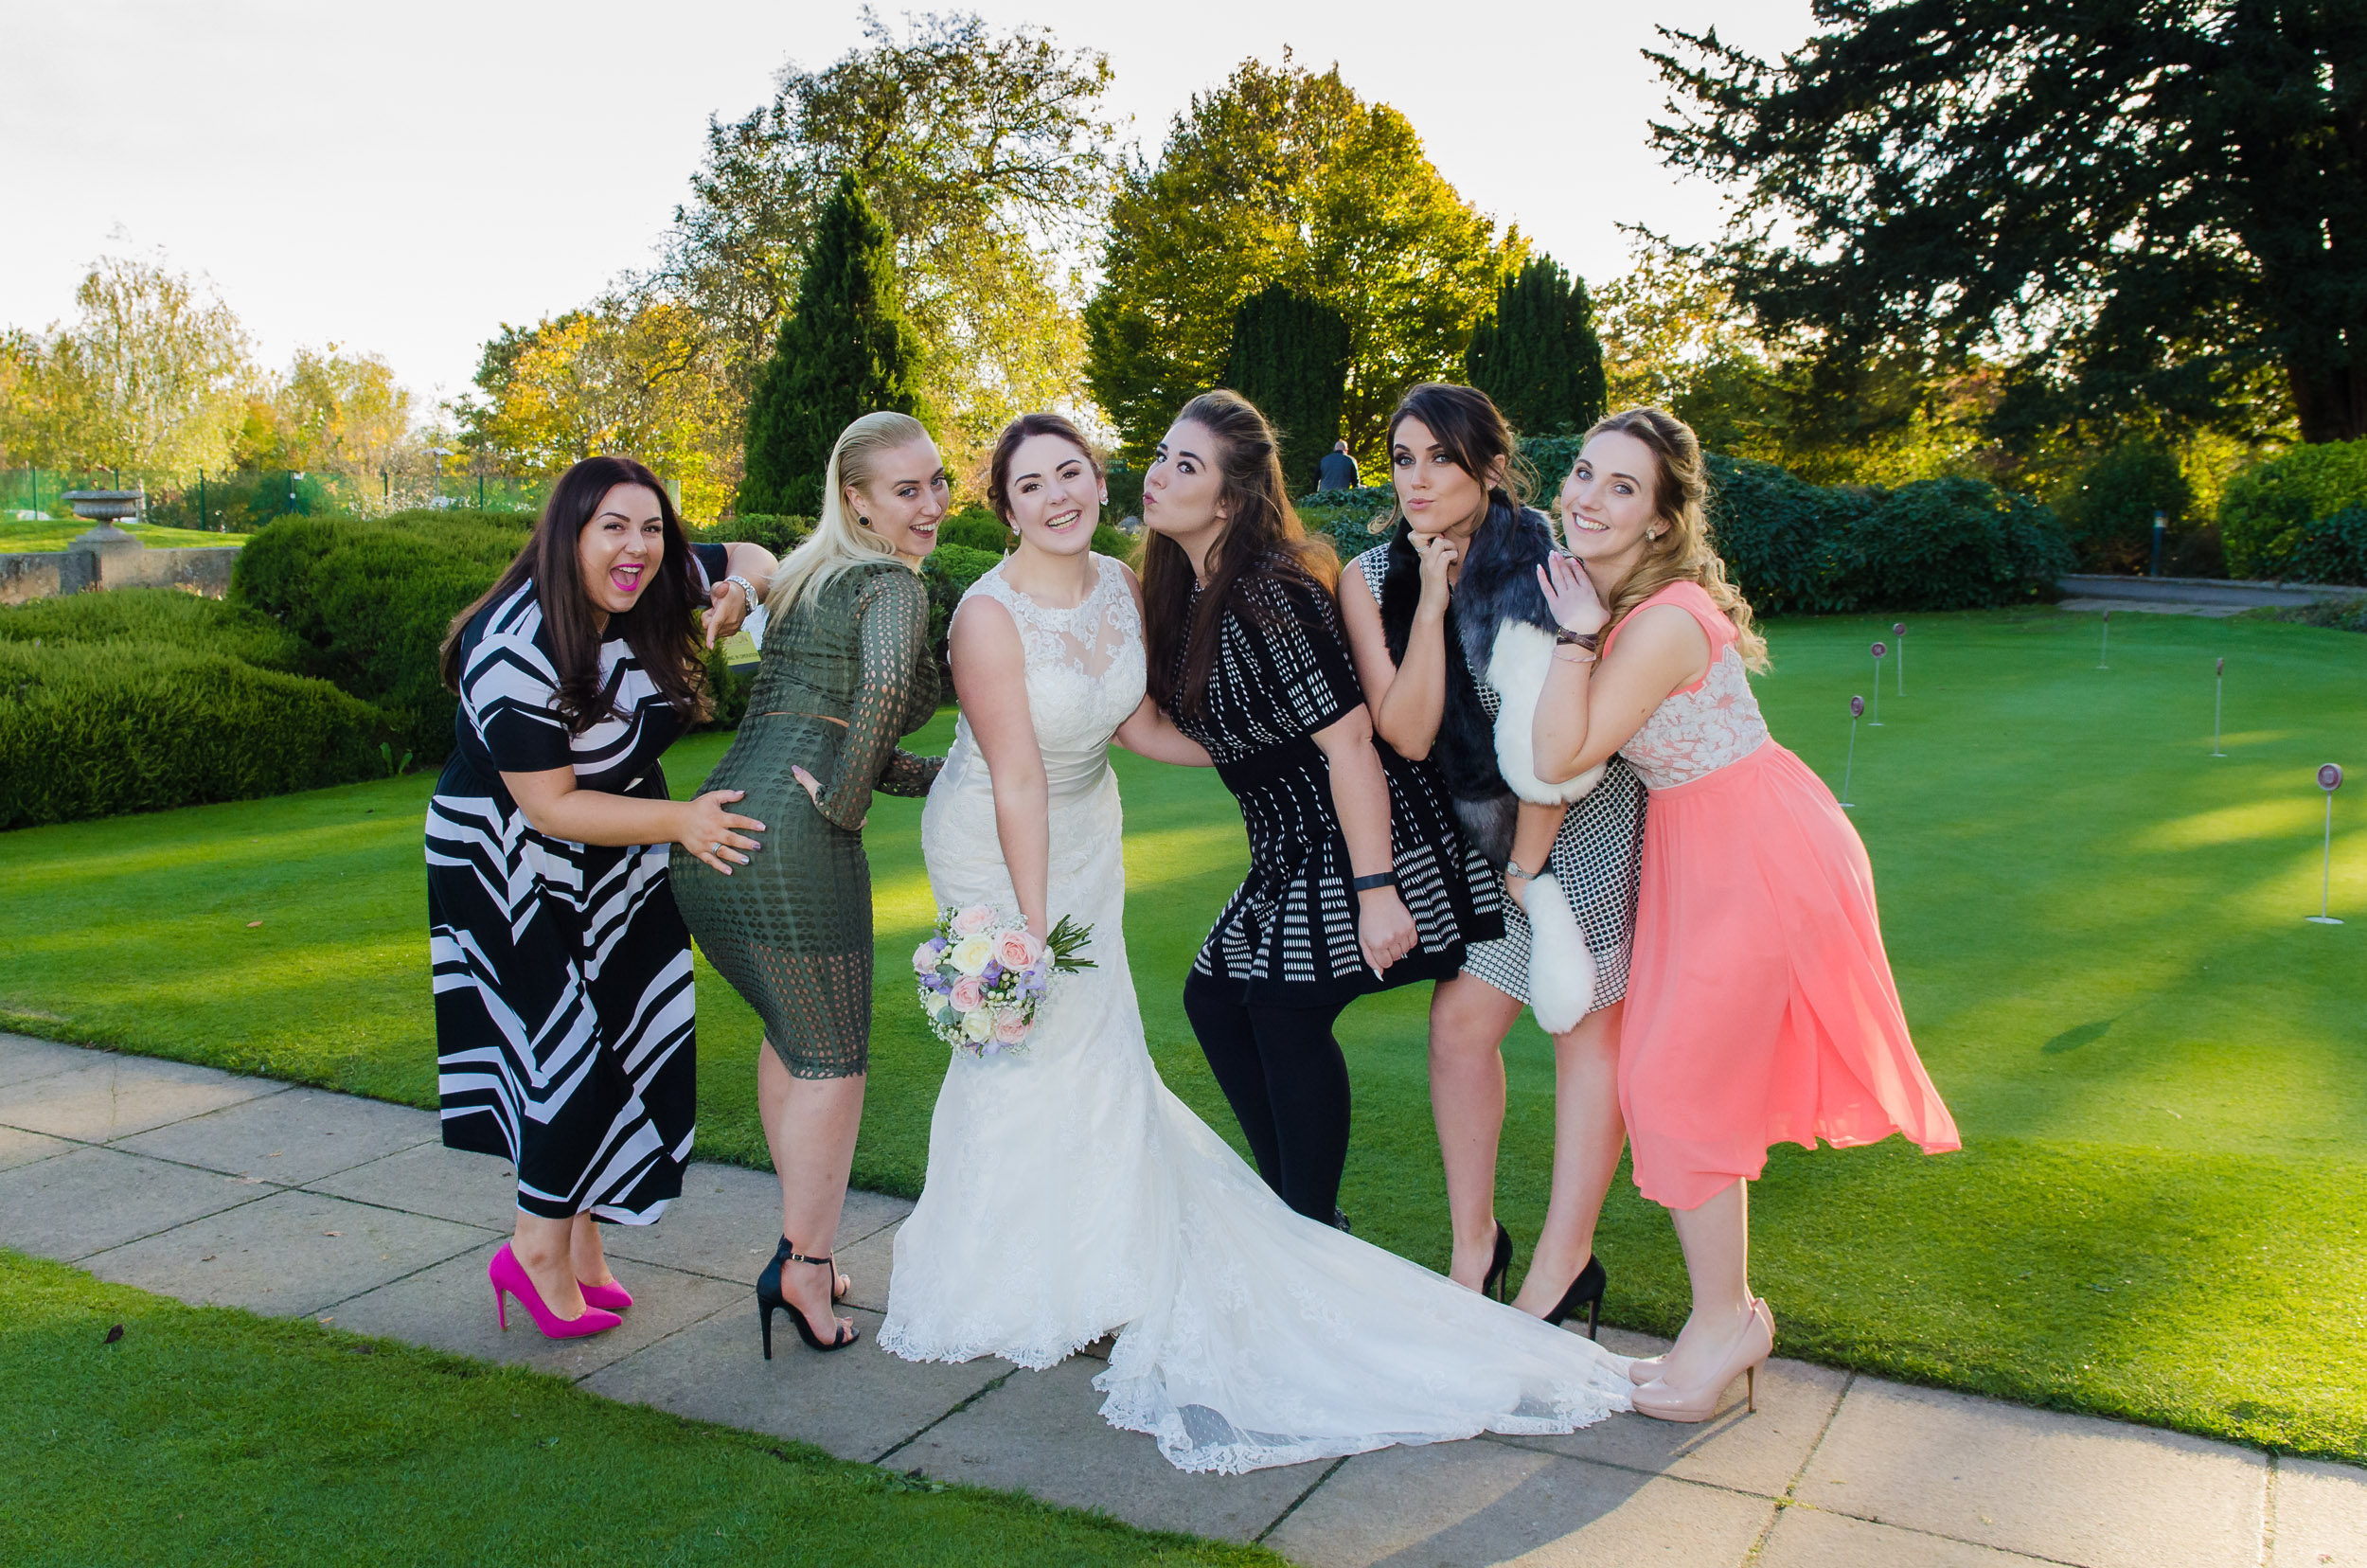 Aimee and Hassan Wedding - © Simon Hawkins Photography. All Rig